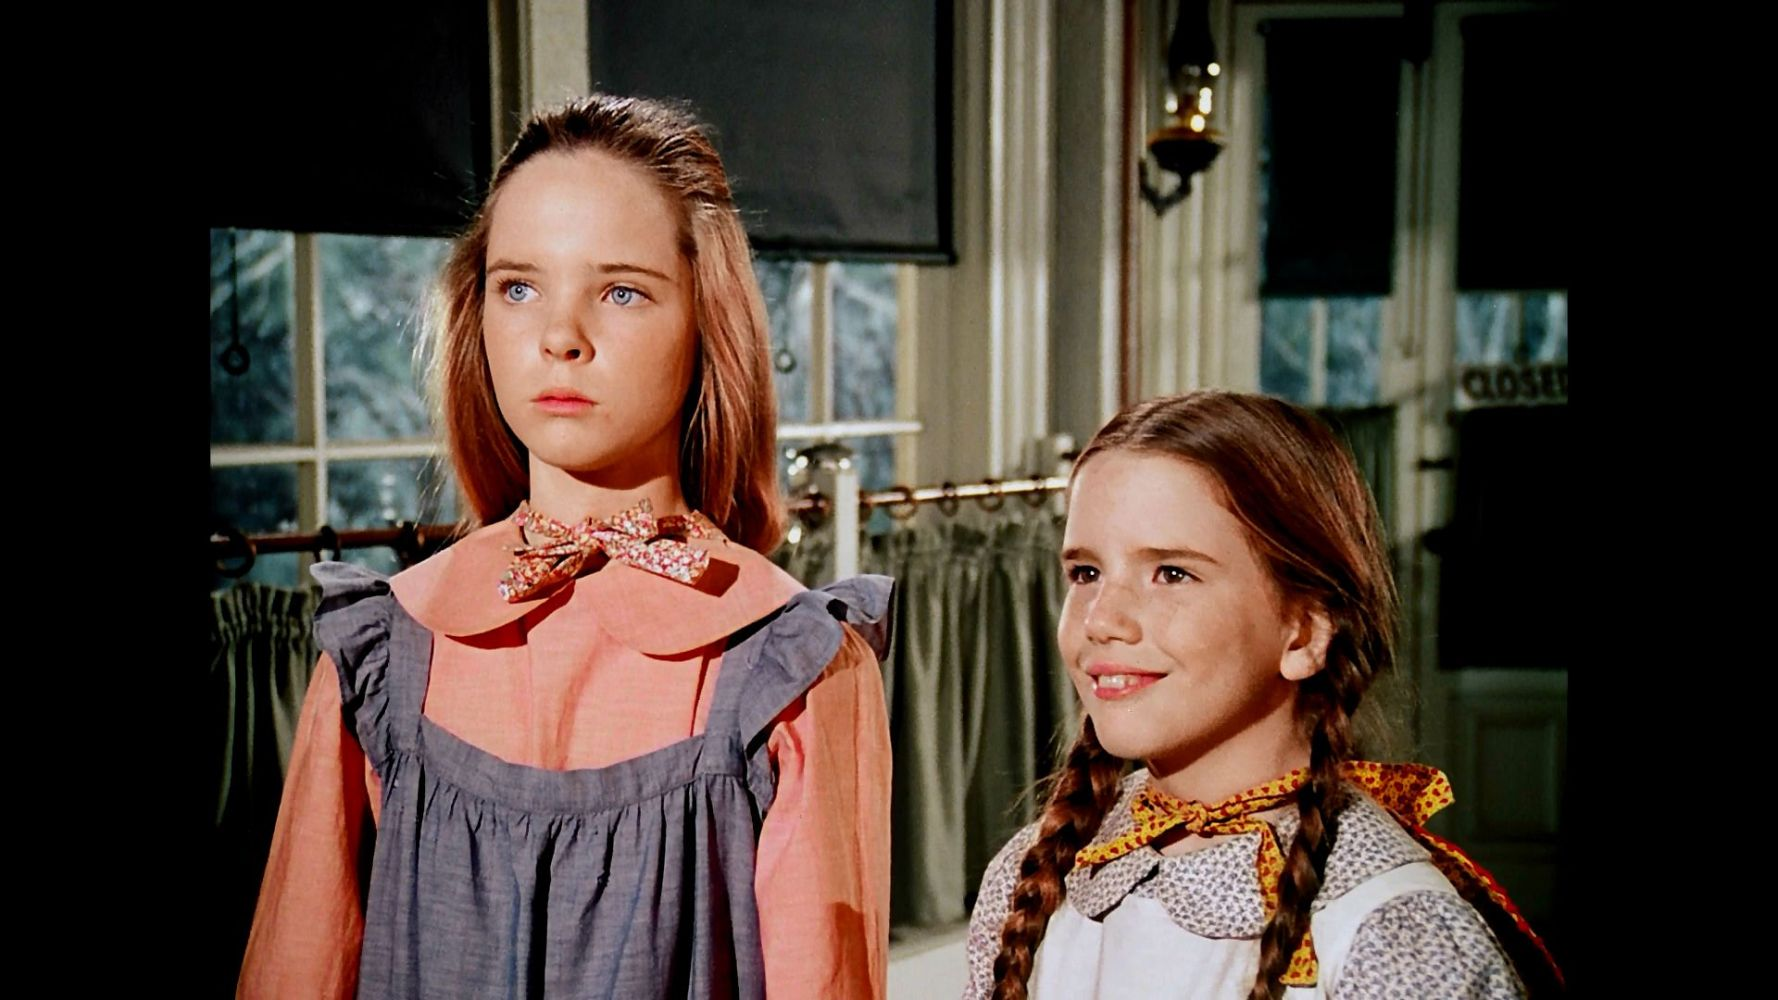 Girl from little house on the prairie naked